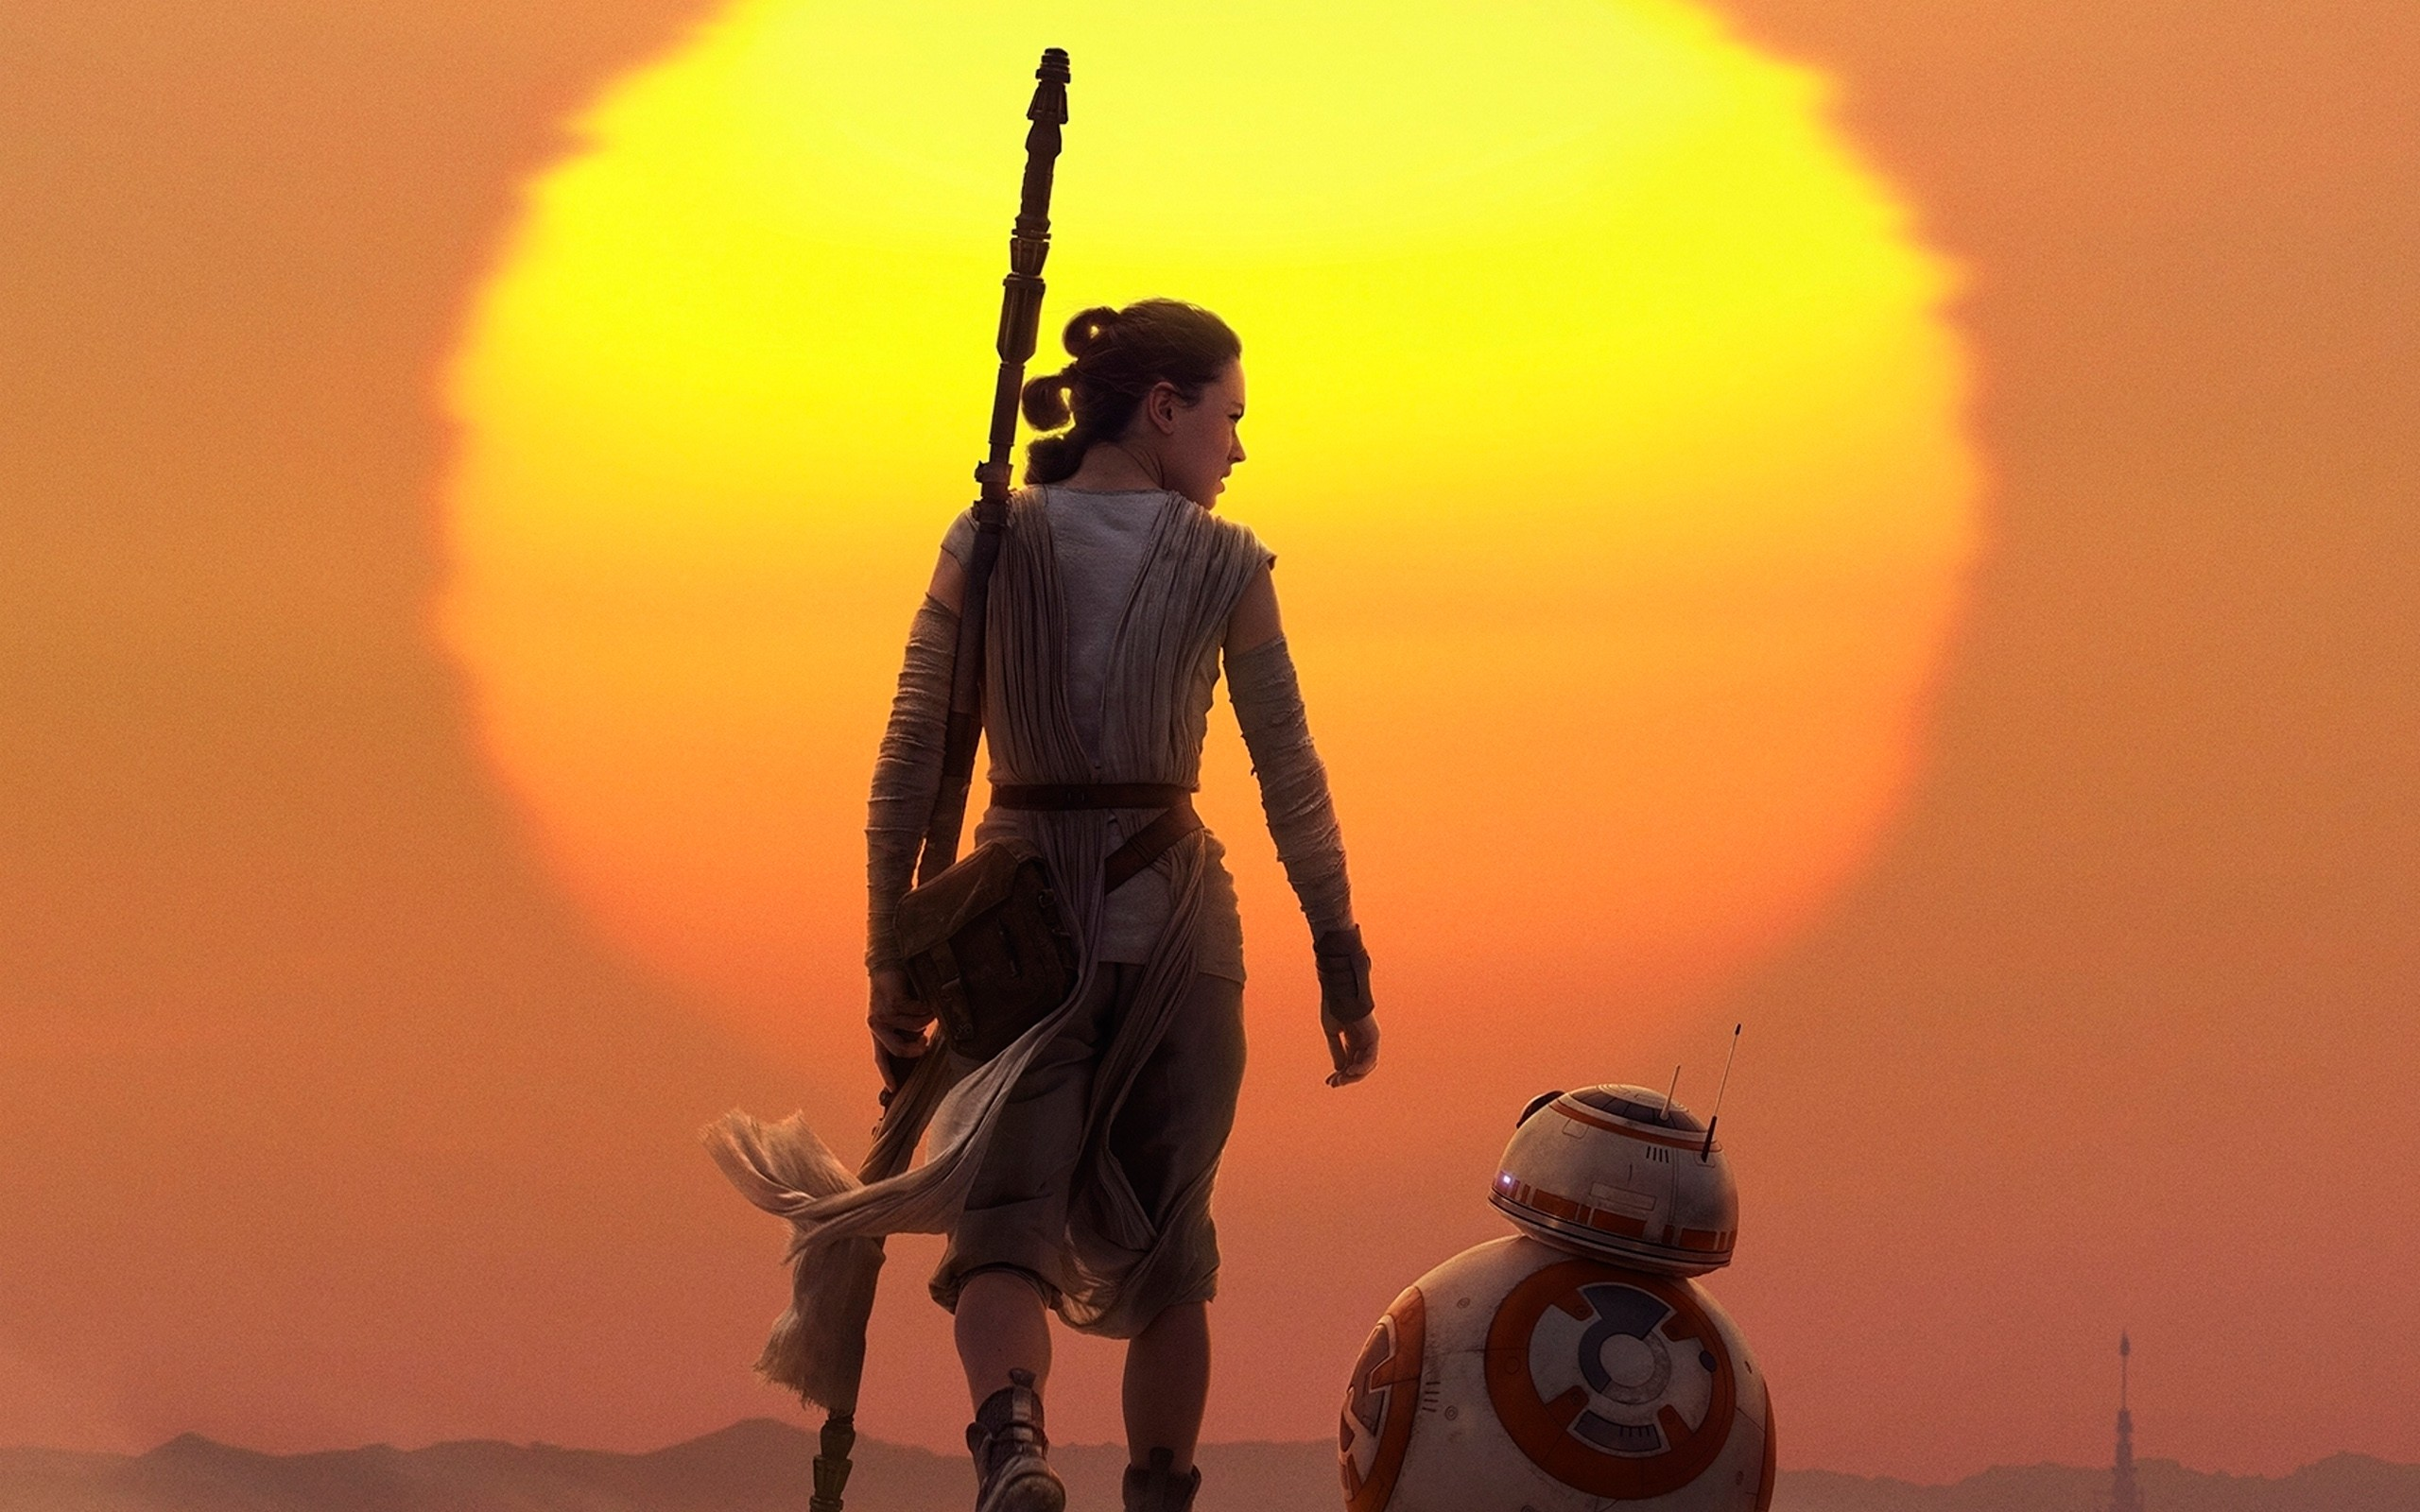 4K Rey (1) - HD Star Wars Wallpaper Backgrounds